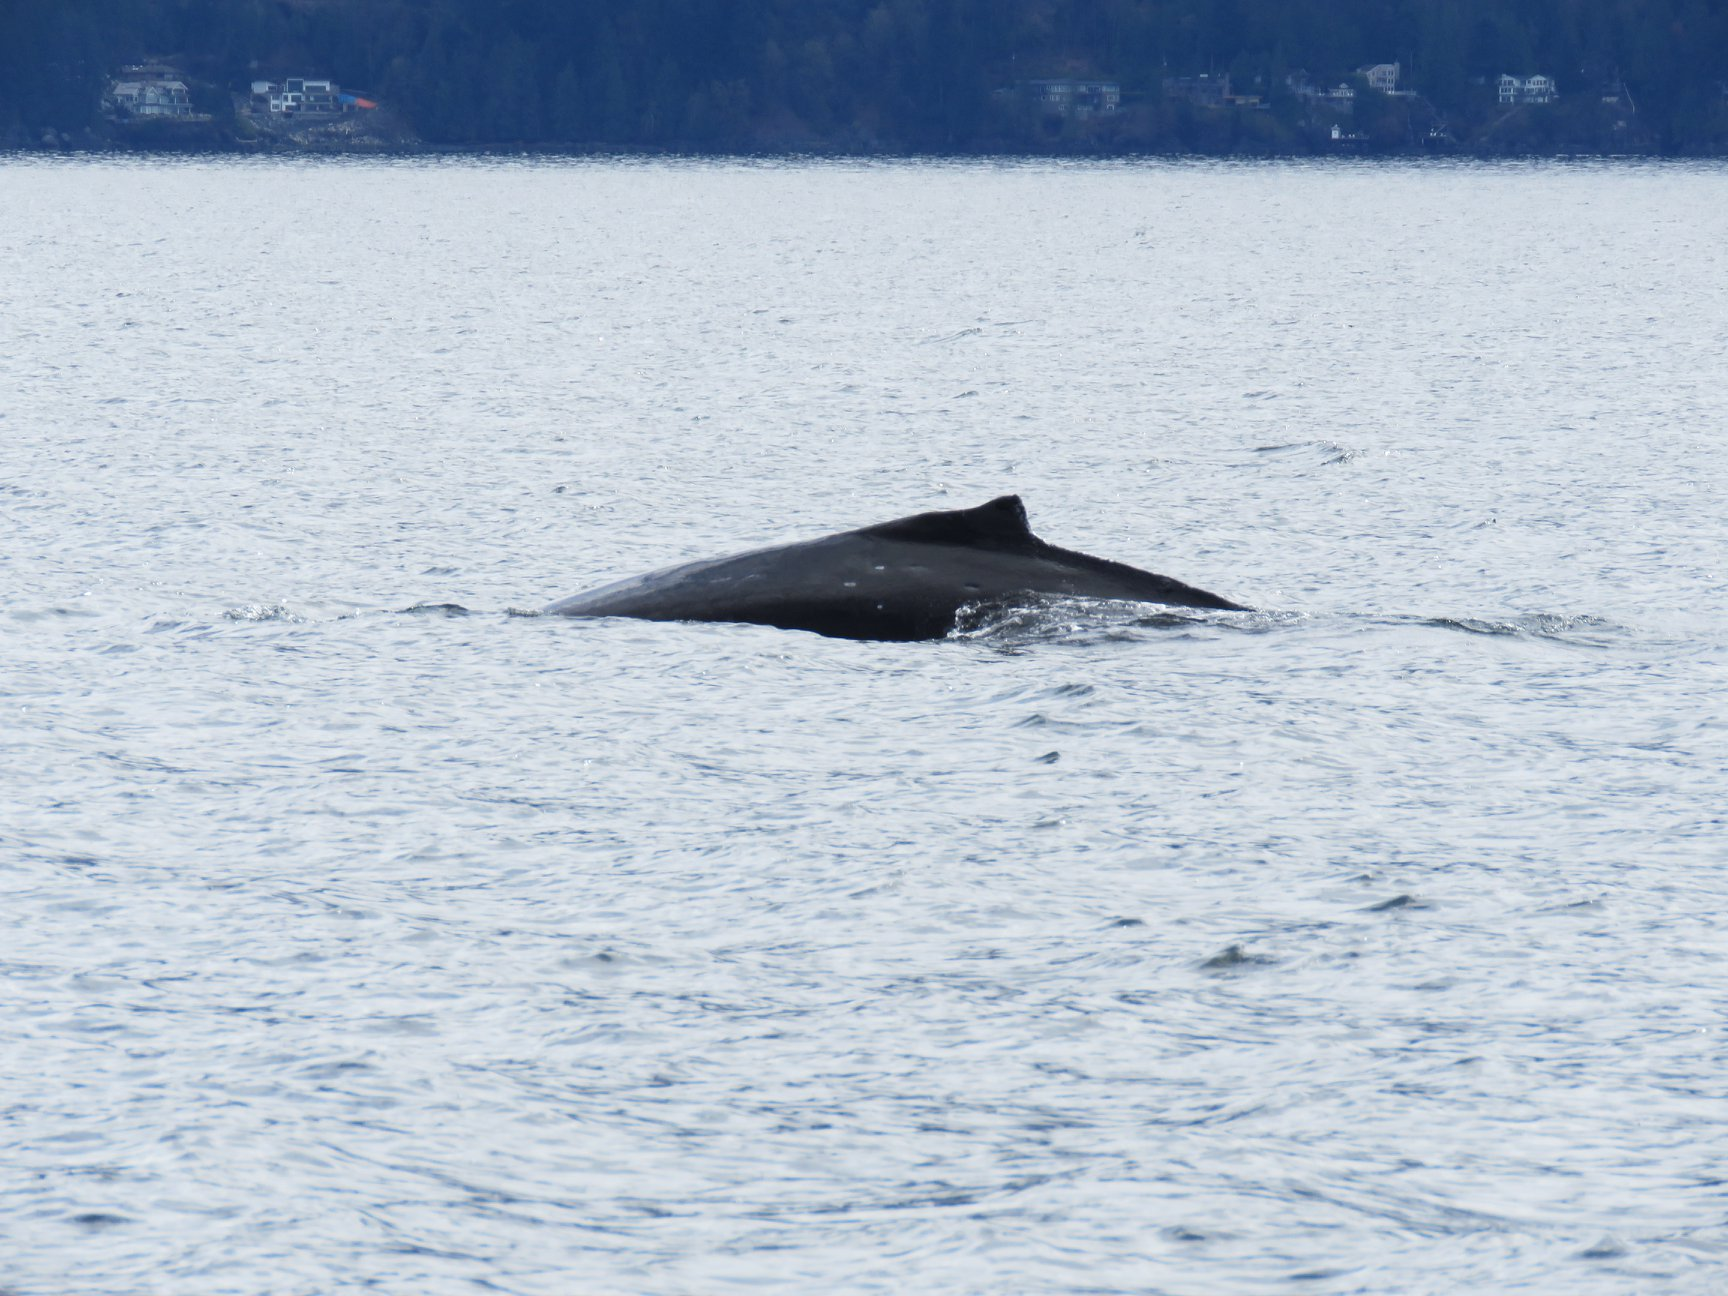 A juvenile humpback whale surfaces in Howe Sound. The circular markings on its back are from cookie cutter sharks, found in tropical seas where this whale spent the winter. Photo by Rodrigo Menezes